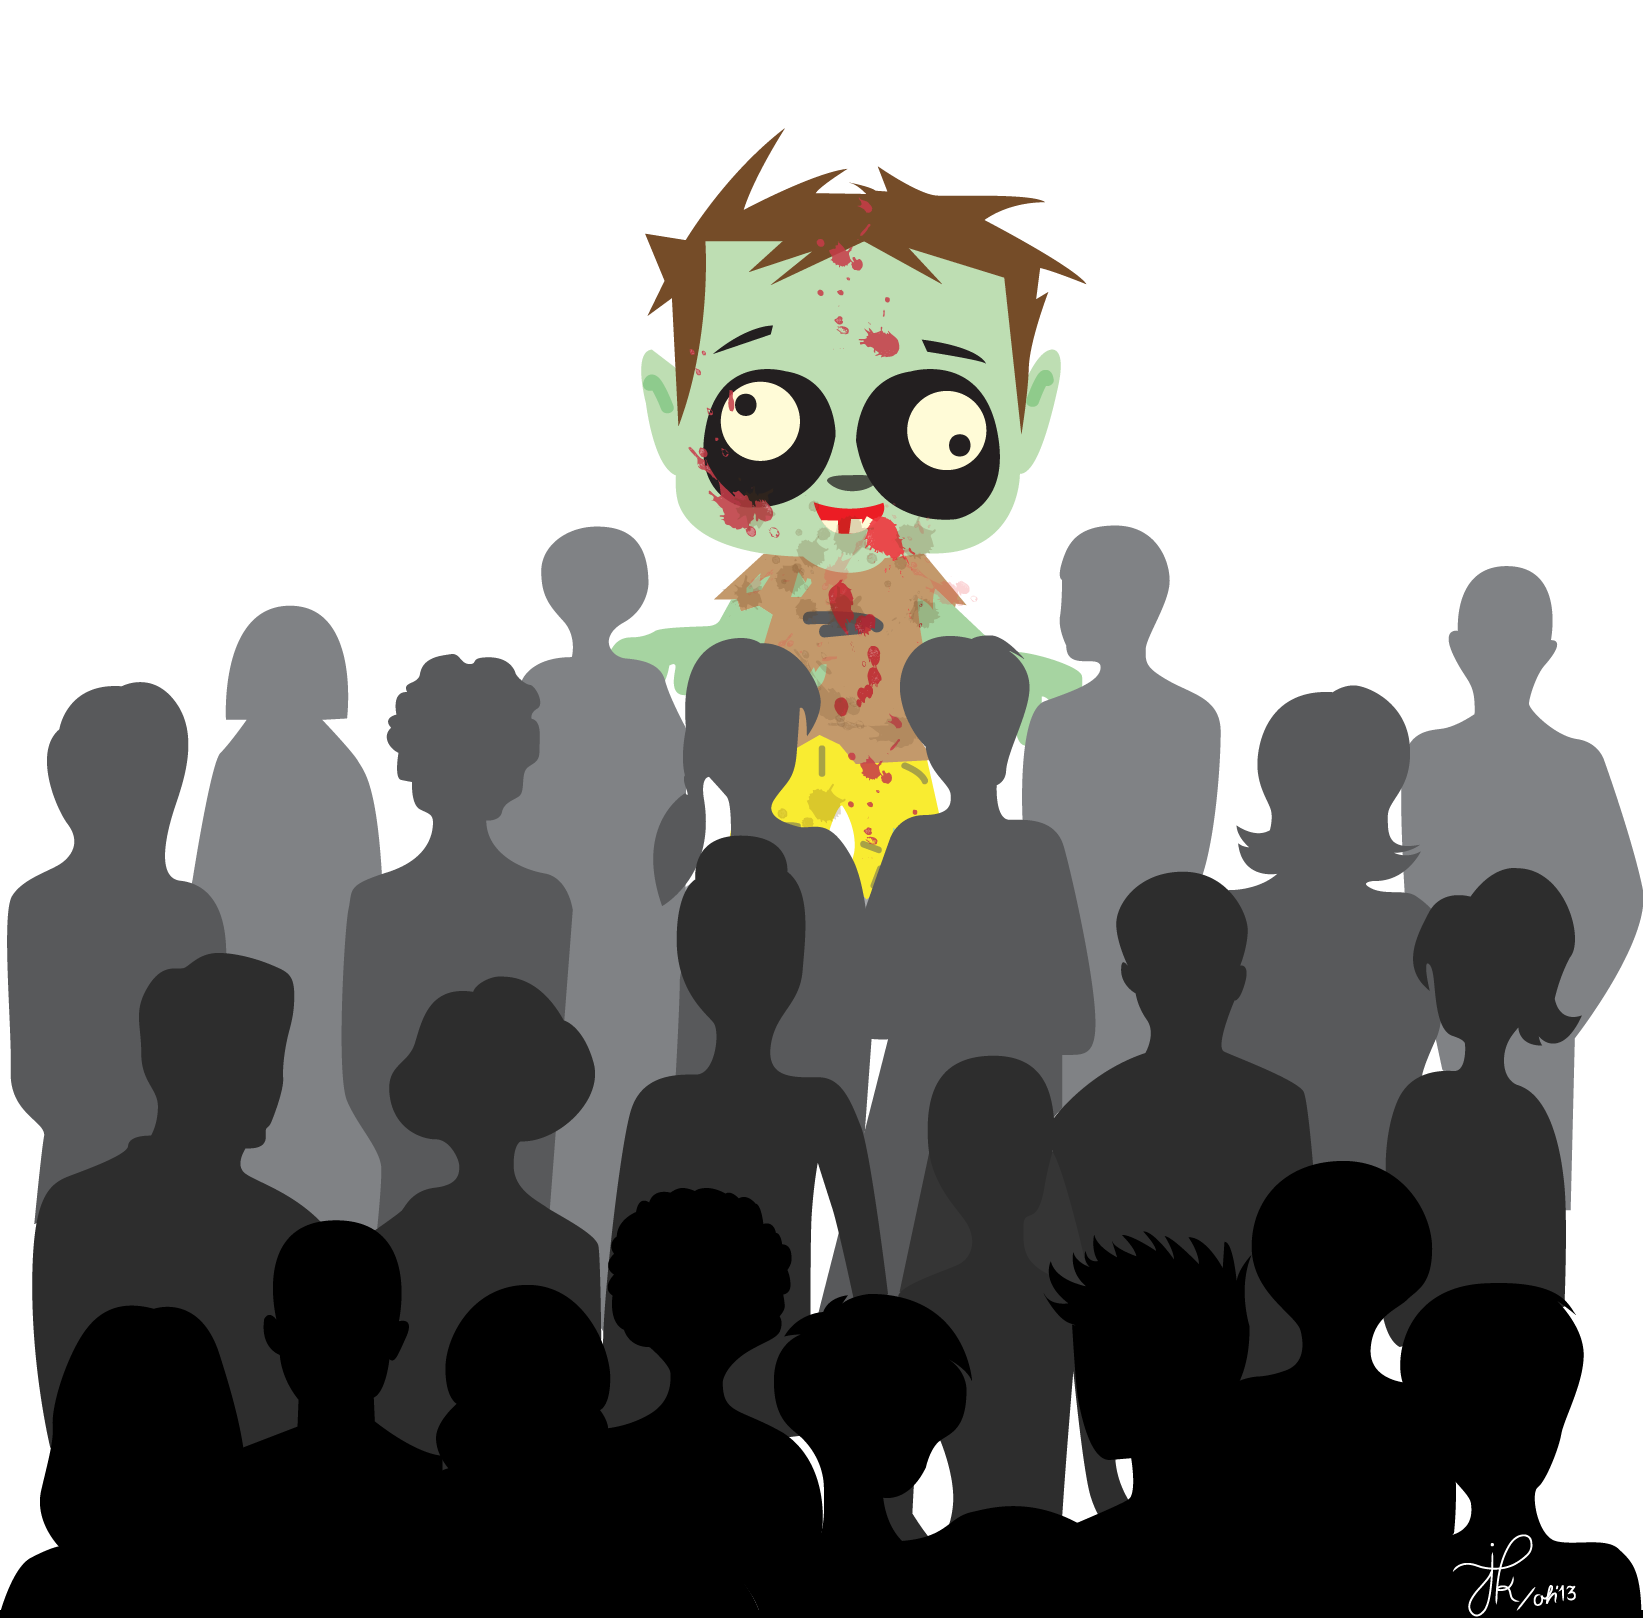 Zombie clipart zombie crowd. A love affair with